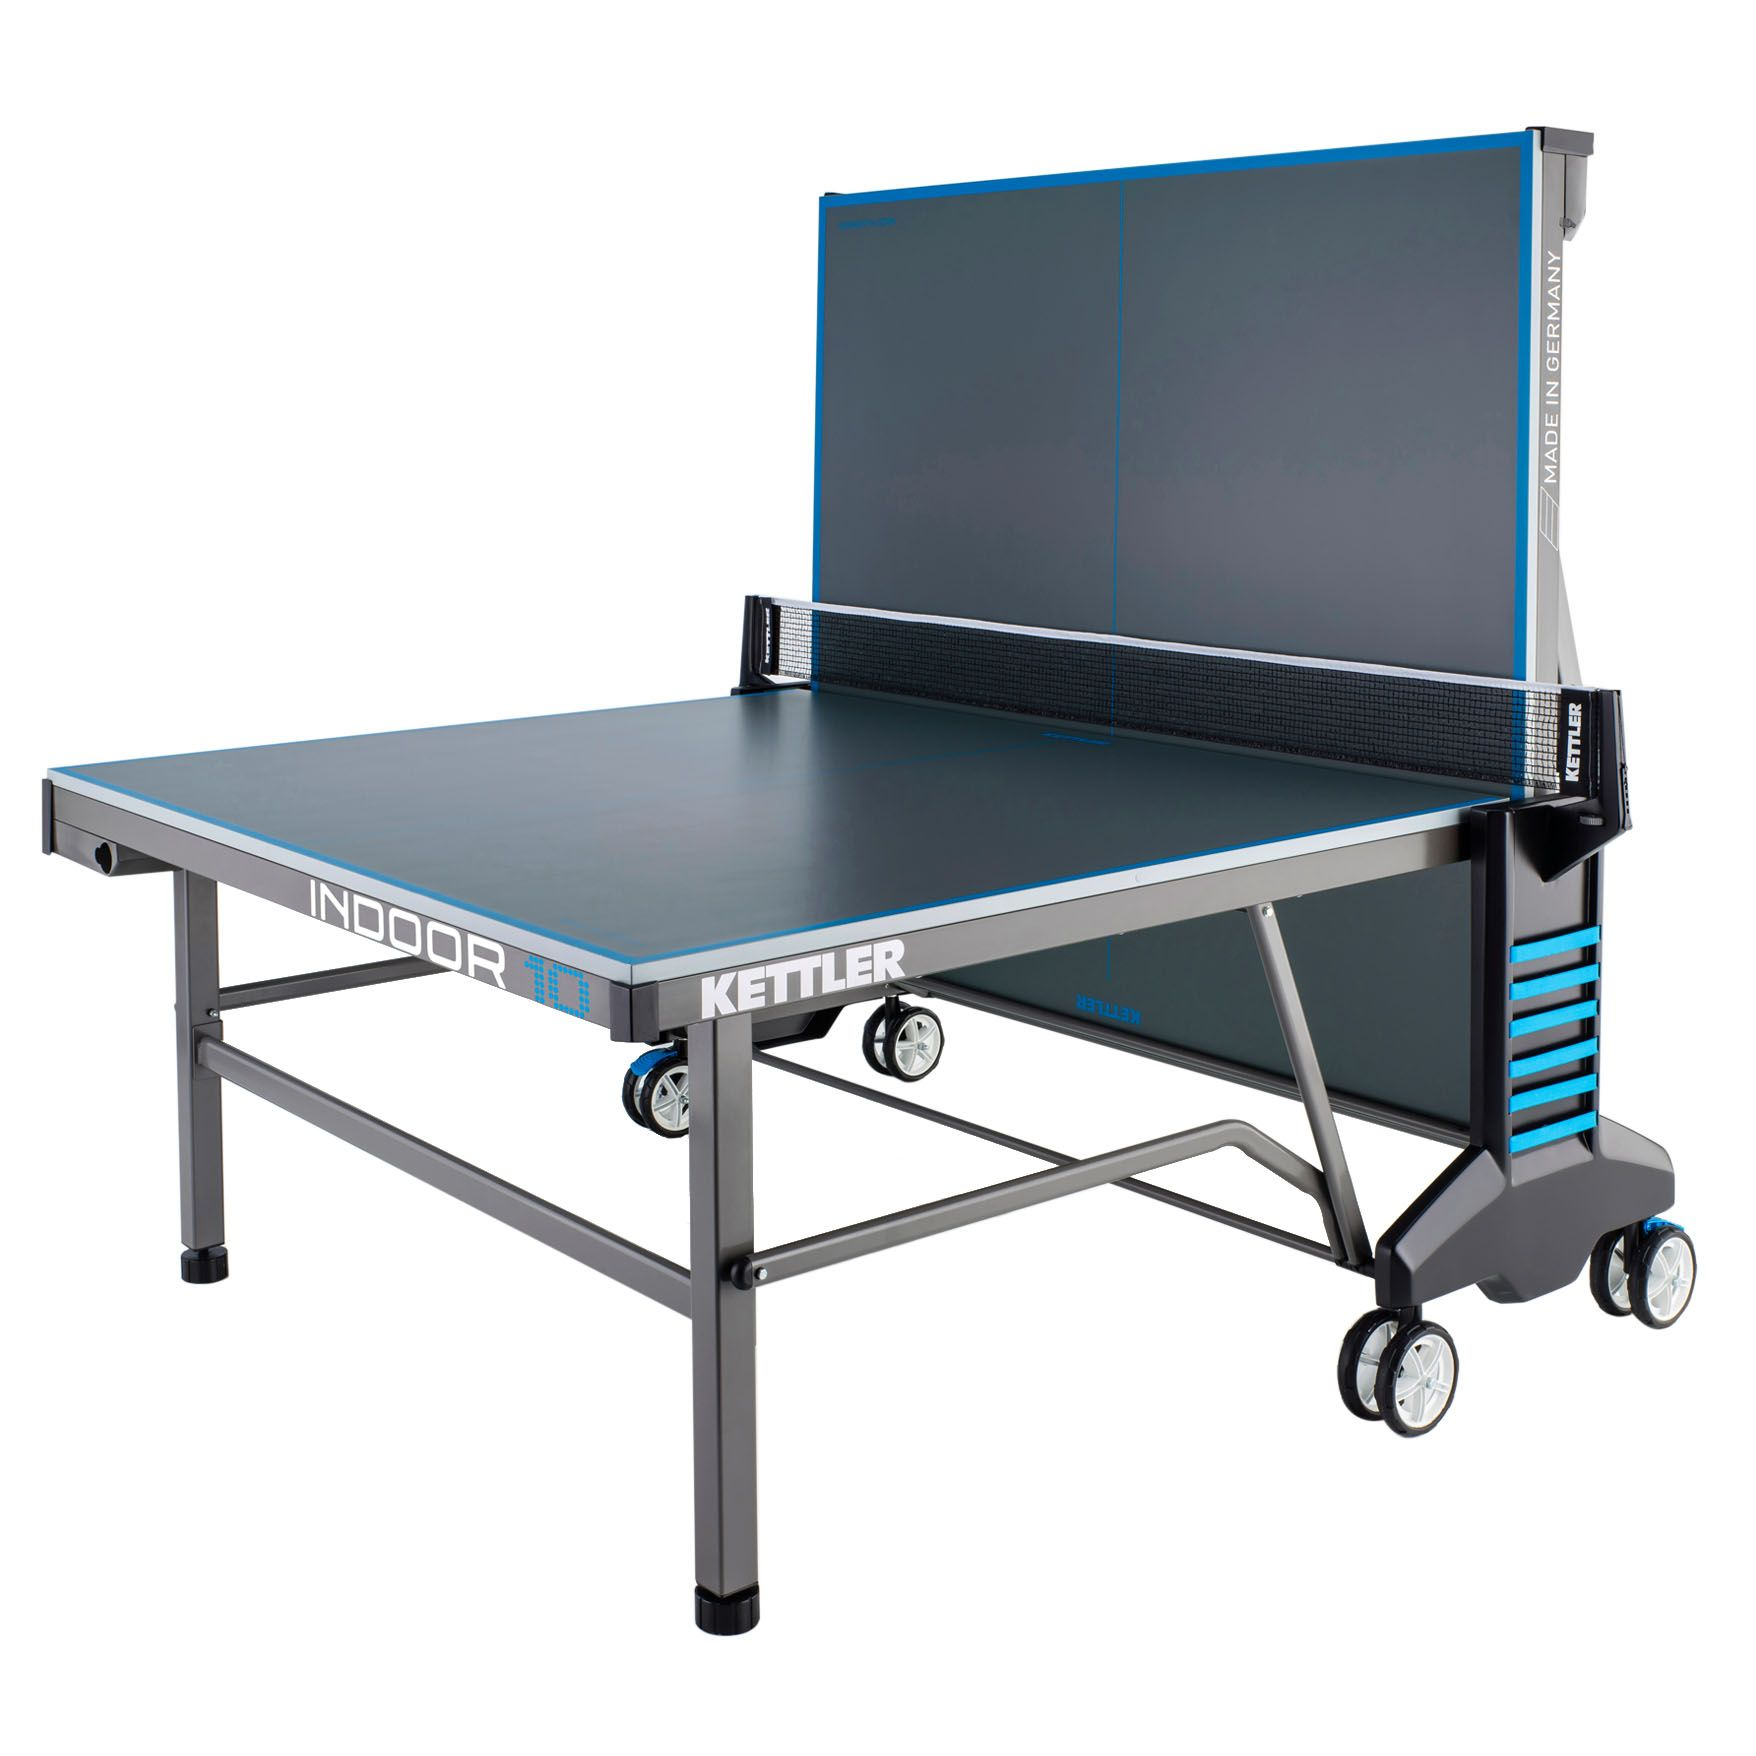 Kettler classic indoor 10 table tennis table for 10 by 10 table